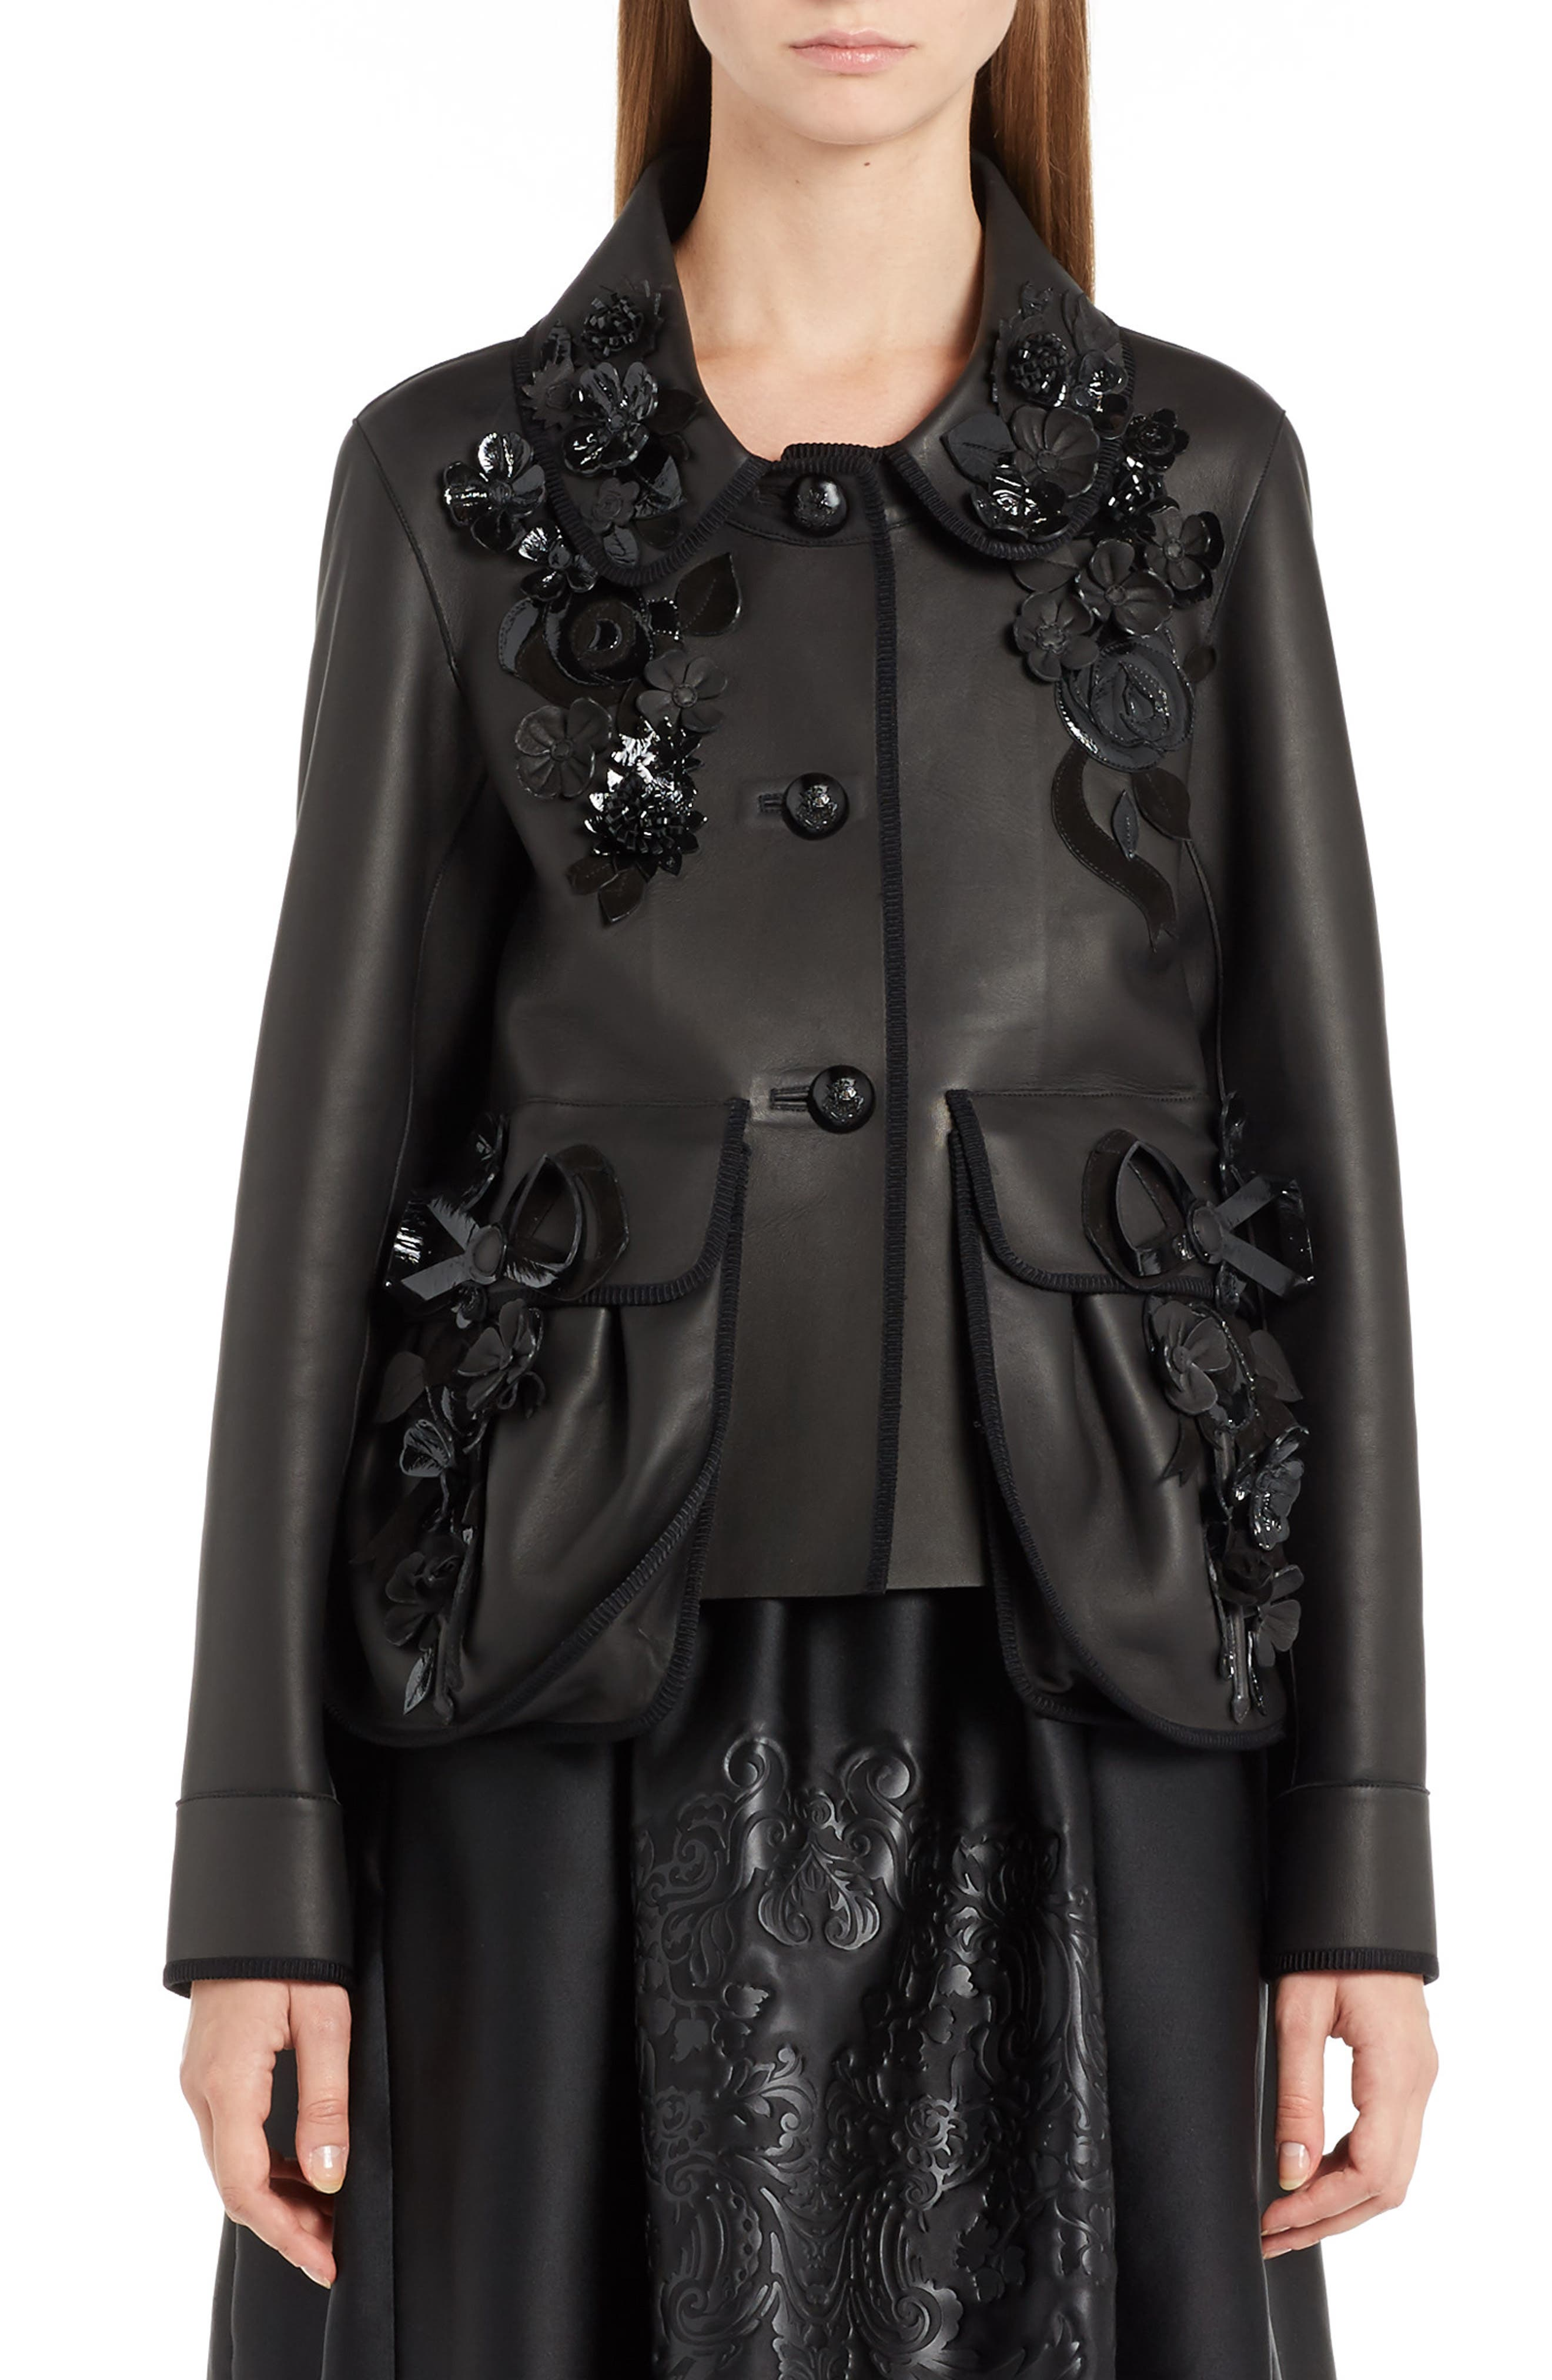 FENDI Floral Appliqué Nappa Leather Jacket